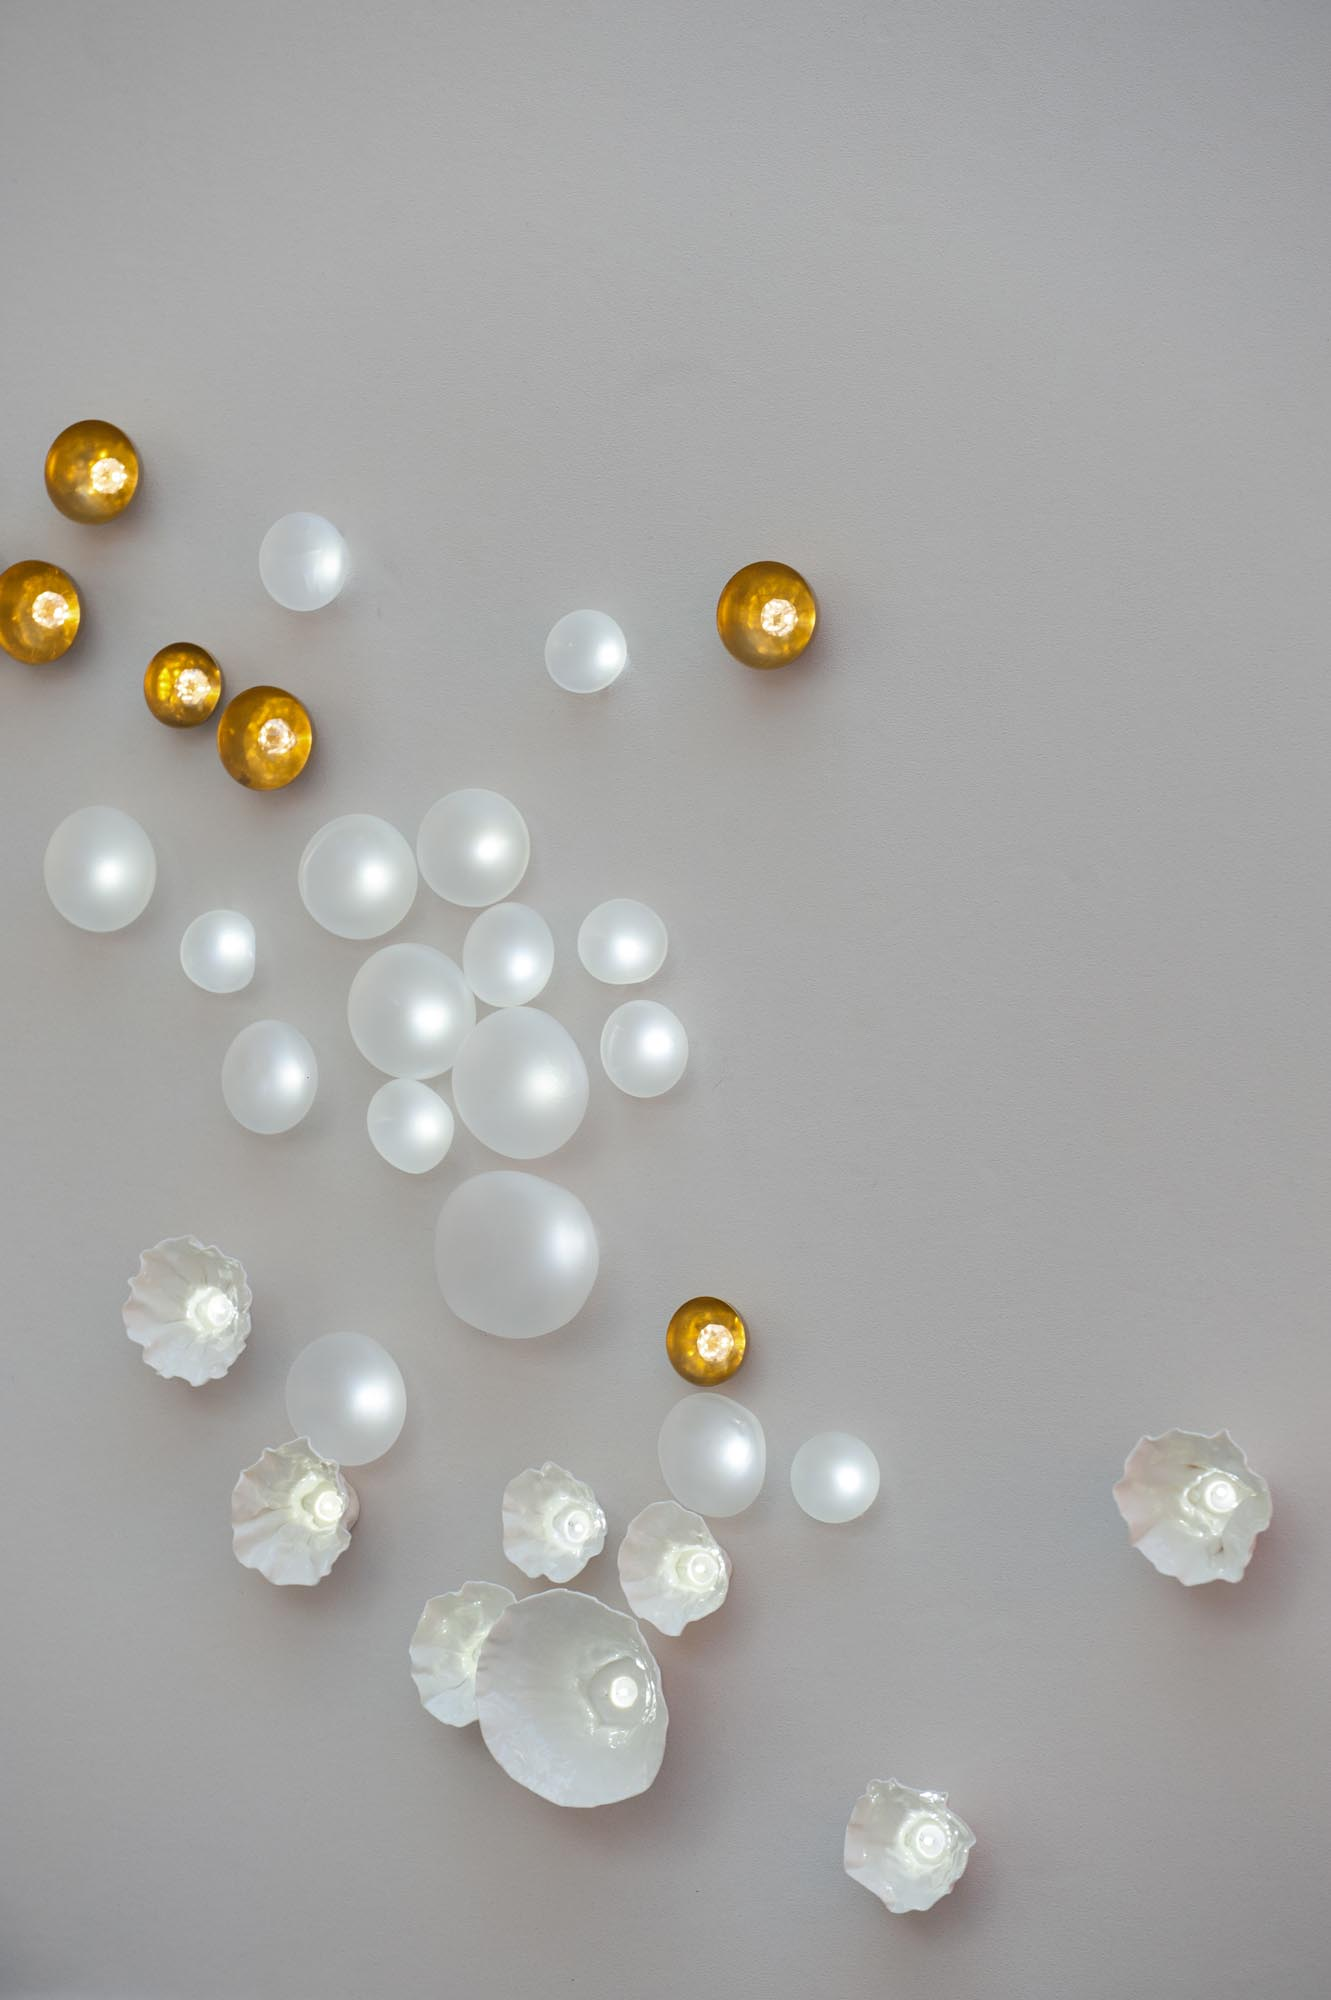 Nucléoles, pure white LEDs, with Nénuphars and Hoyas